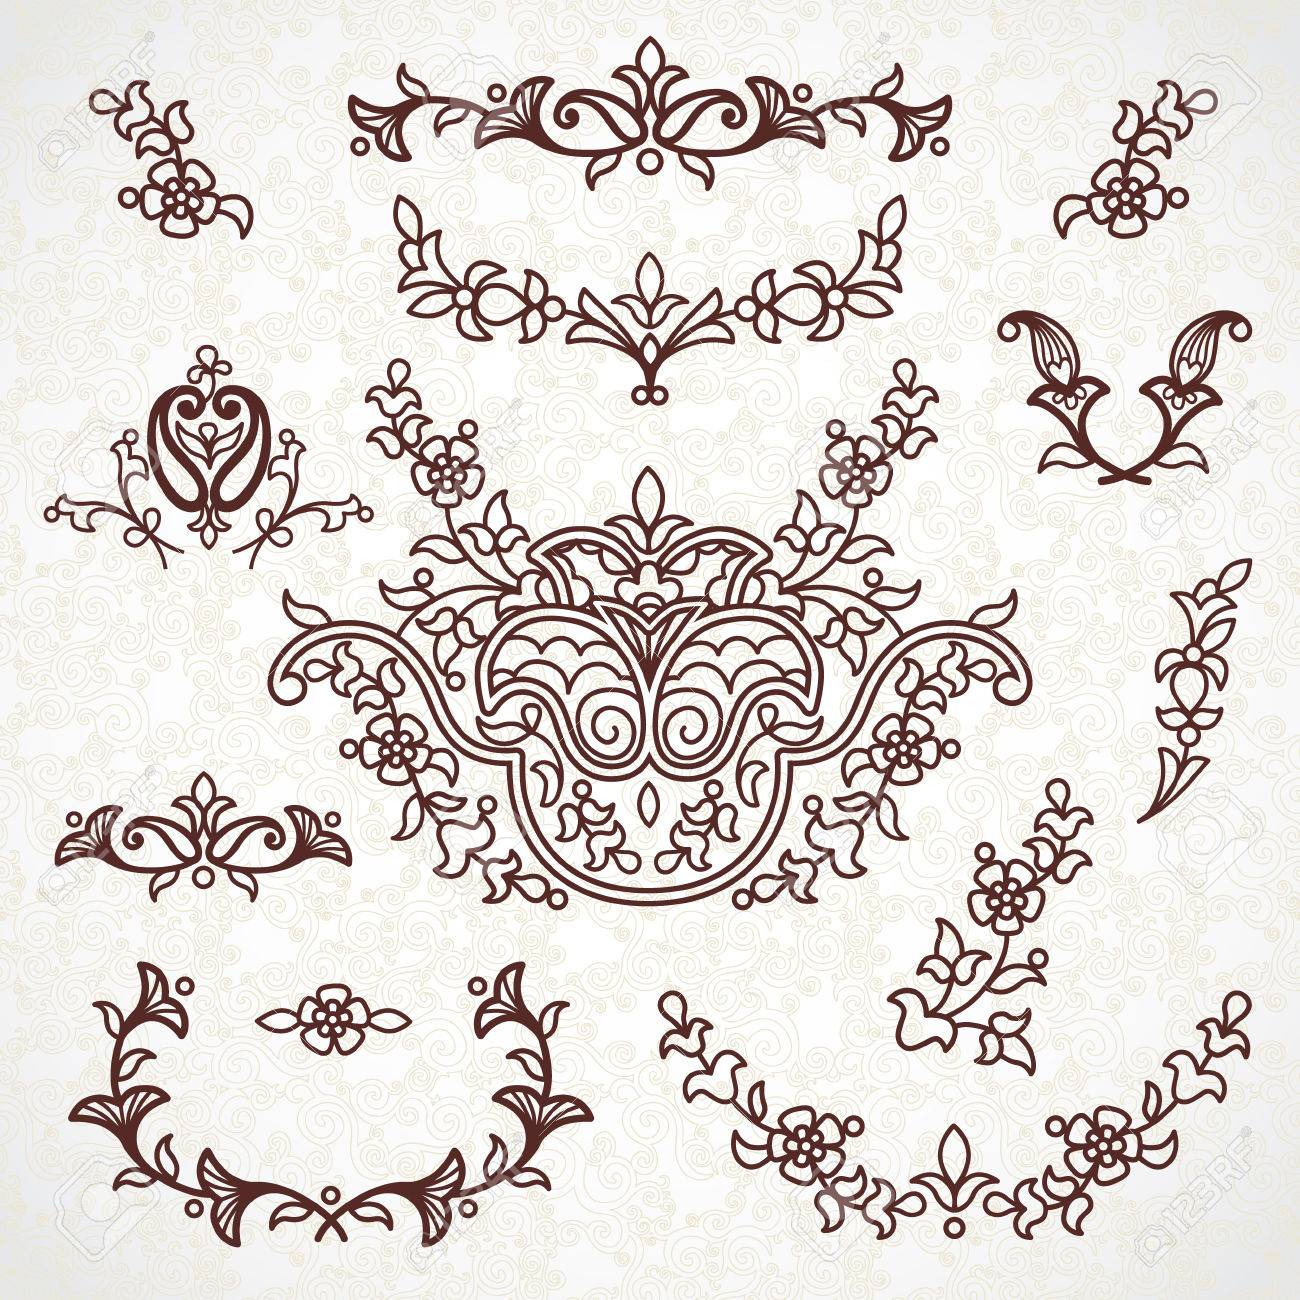 Ornamental Lace Patterns For Wedding Invitations And Greeting ...